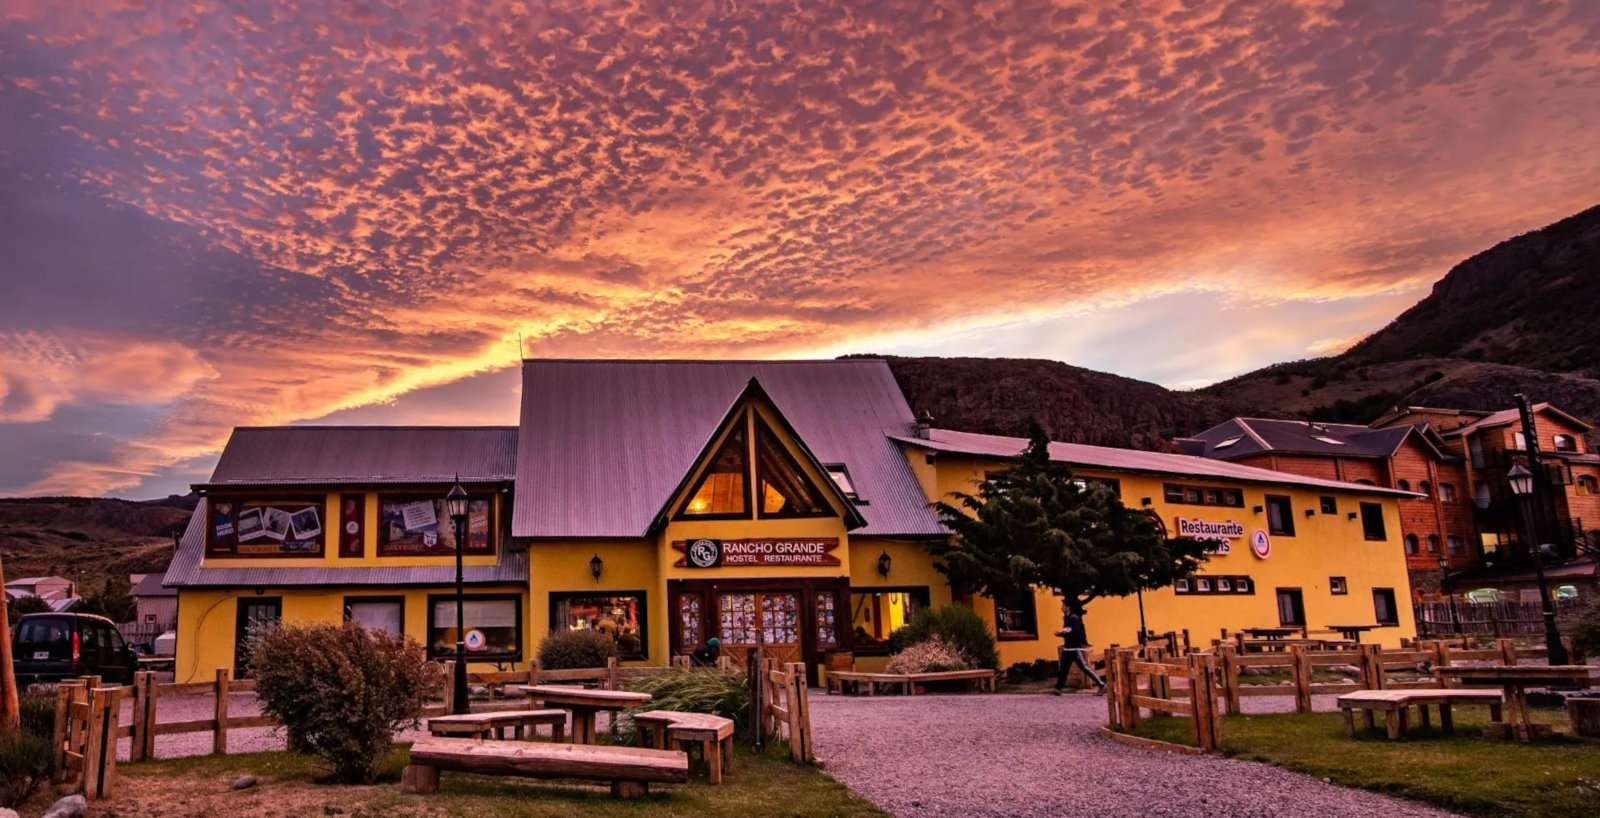 Gay travellers to El Chaltén will find the Rancho Grande Hostel a great budget choice!